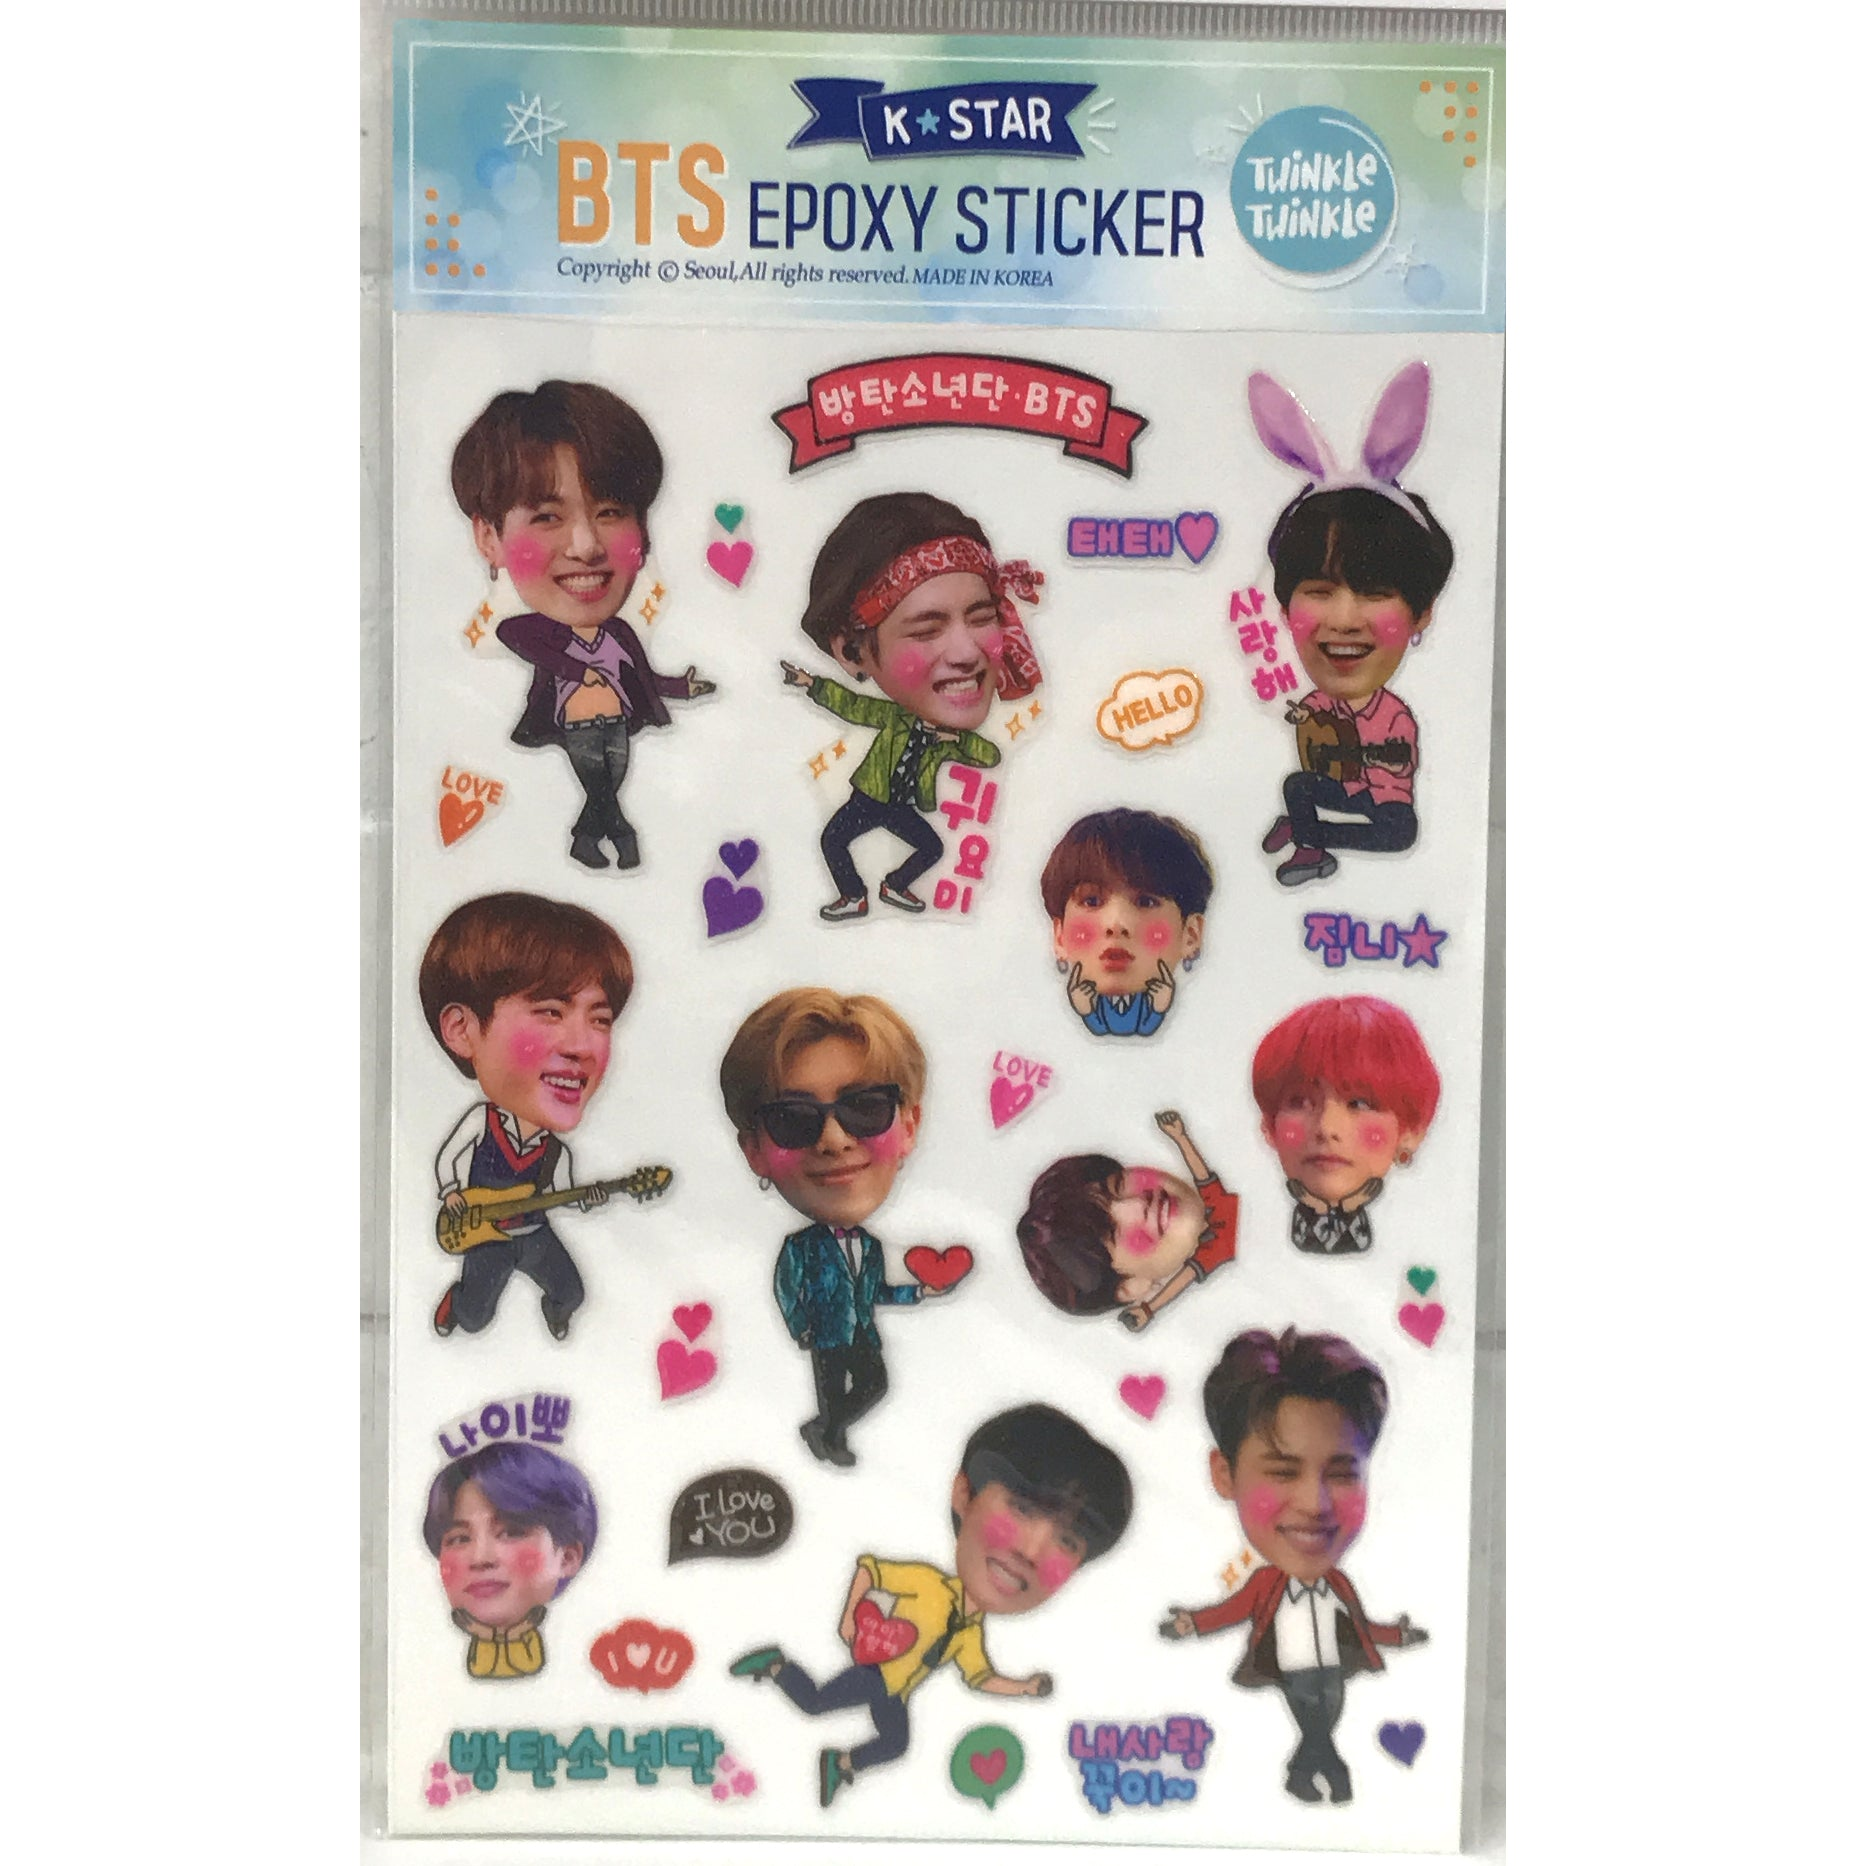 BTS Epoxy Sticker